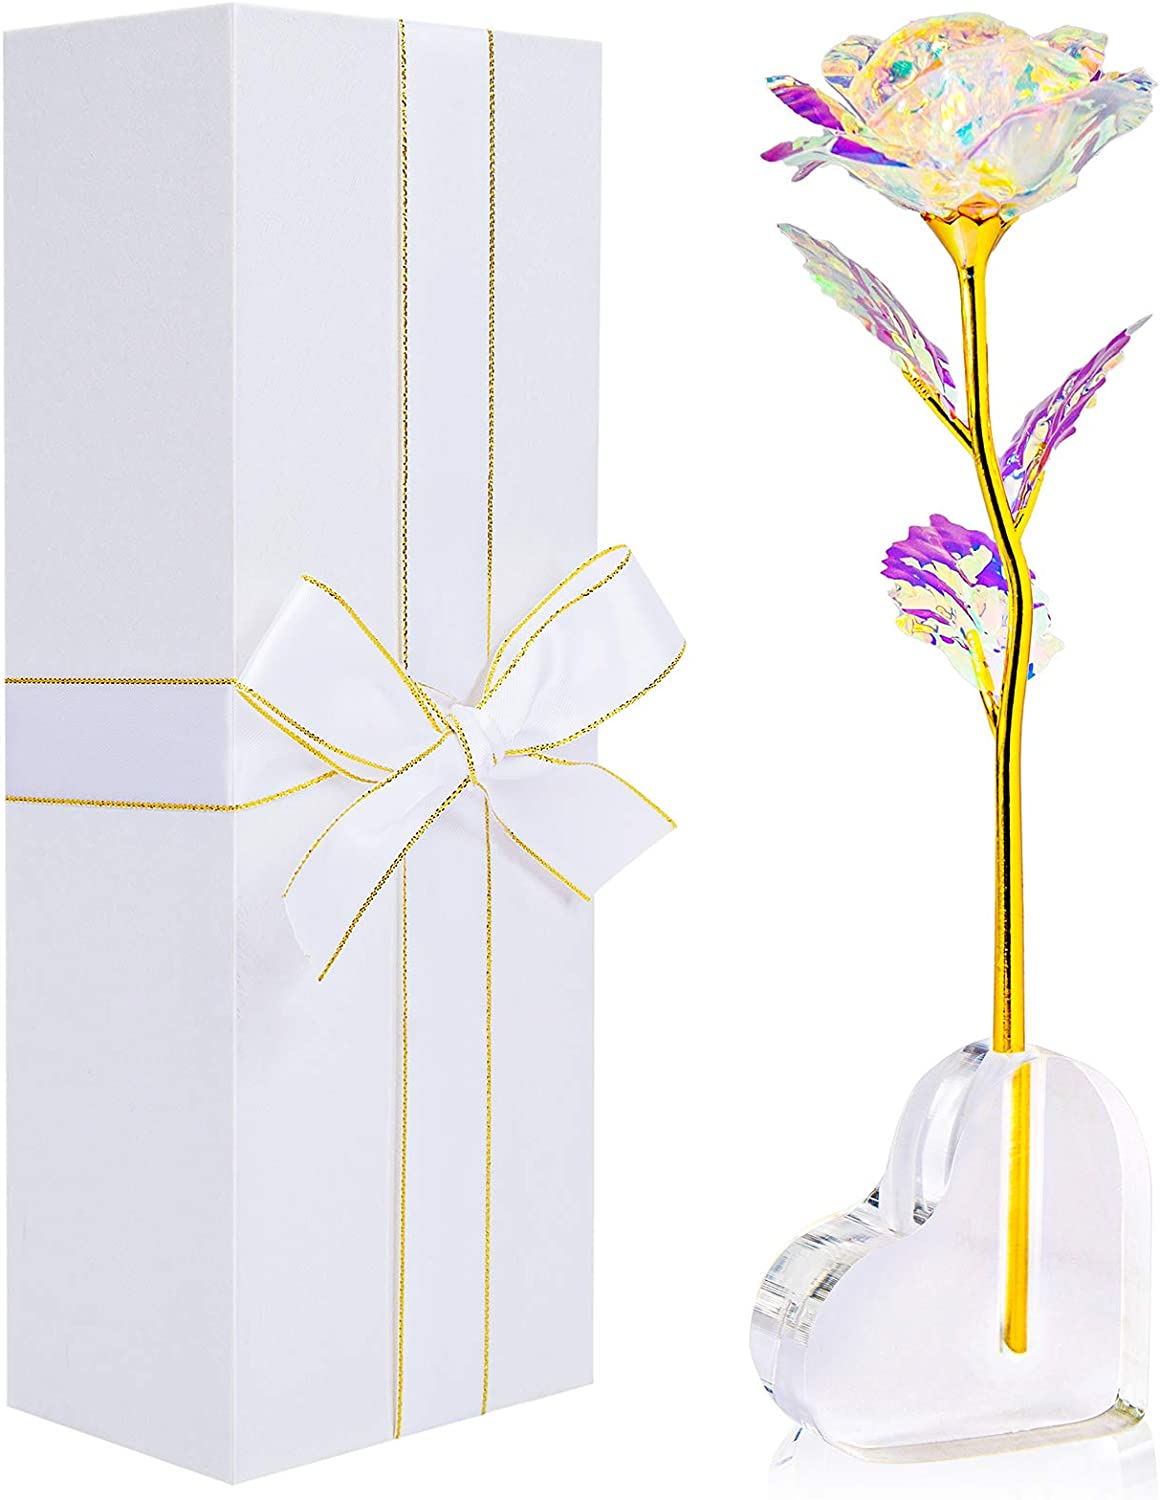 Popular overseas Galaxy Rose Flower Gift-Galaxy Cryst Enchanted Super popular specialty store Forever with